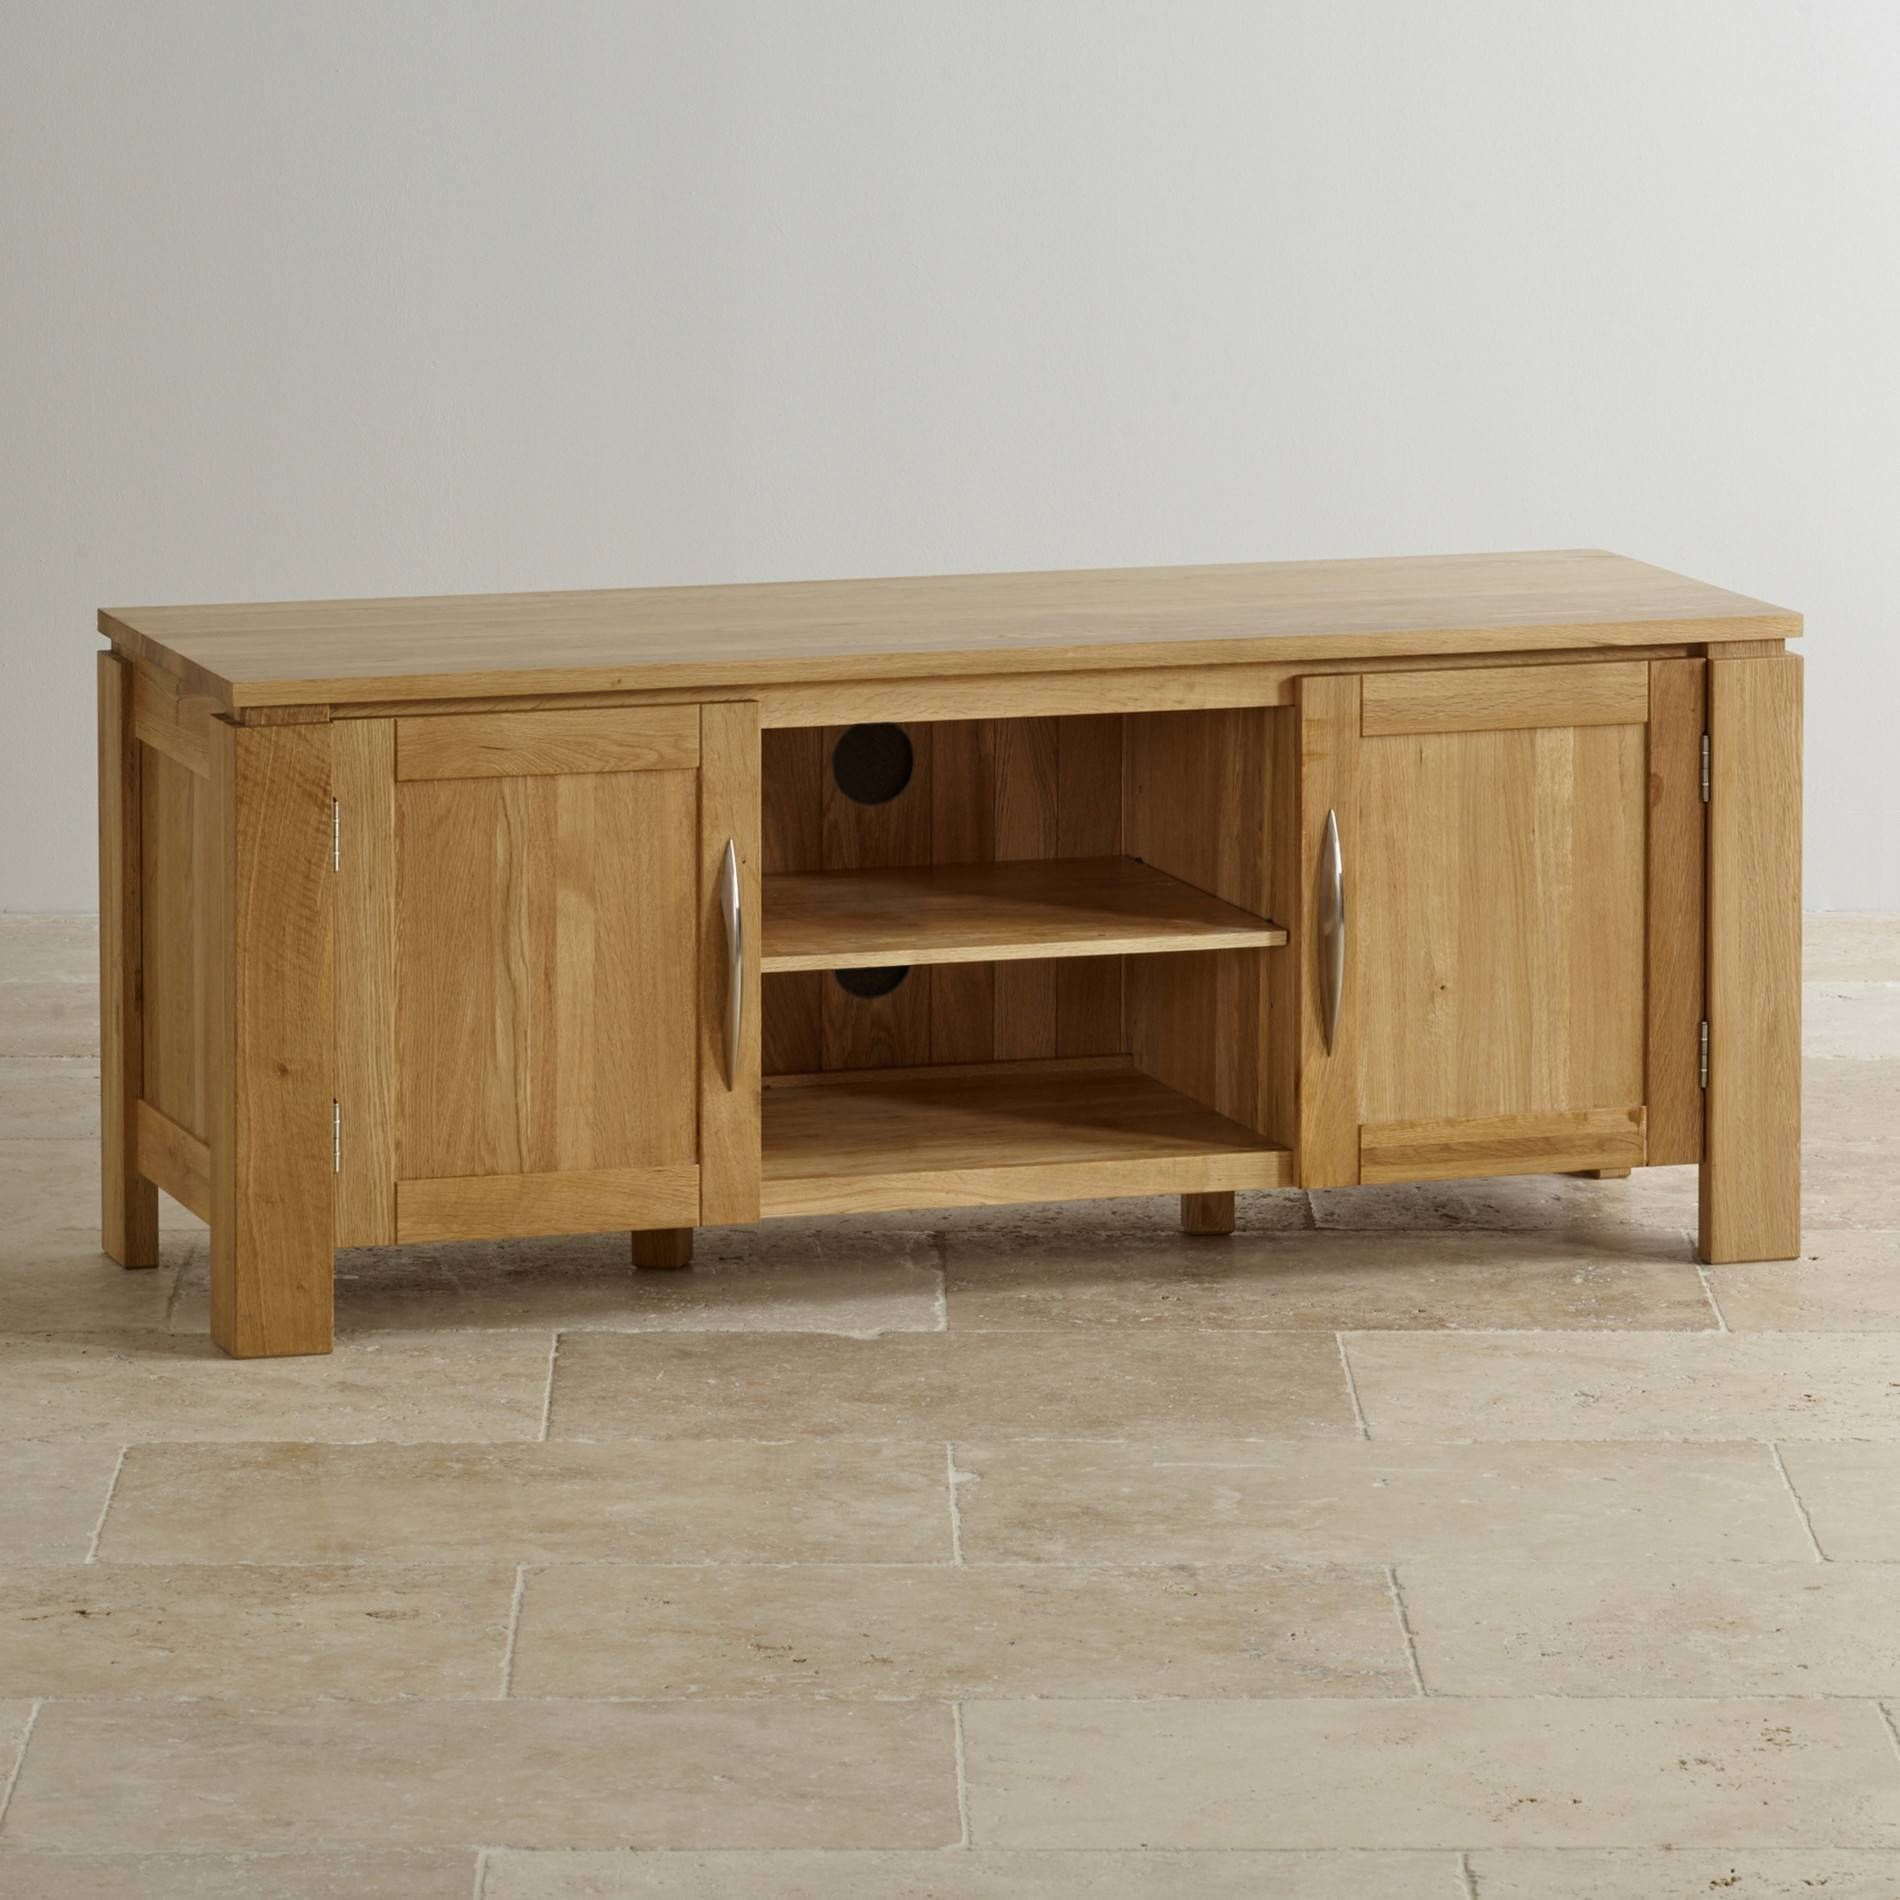 Galway Tv Cabinet In Natural Solid Oak | Oak Furniture Land in Solid Oak Tv Cabinets (Image 7 of 15)